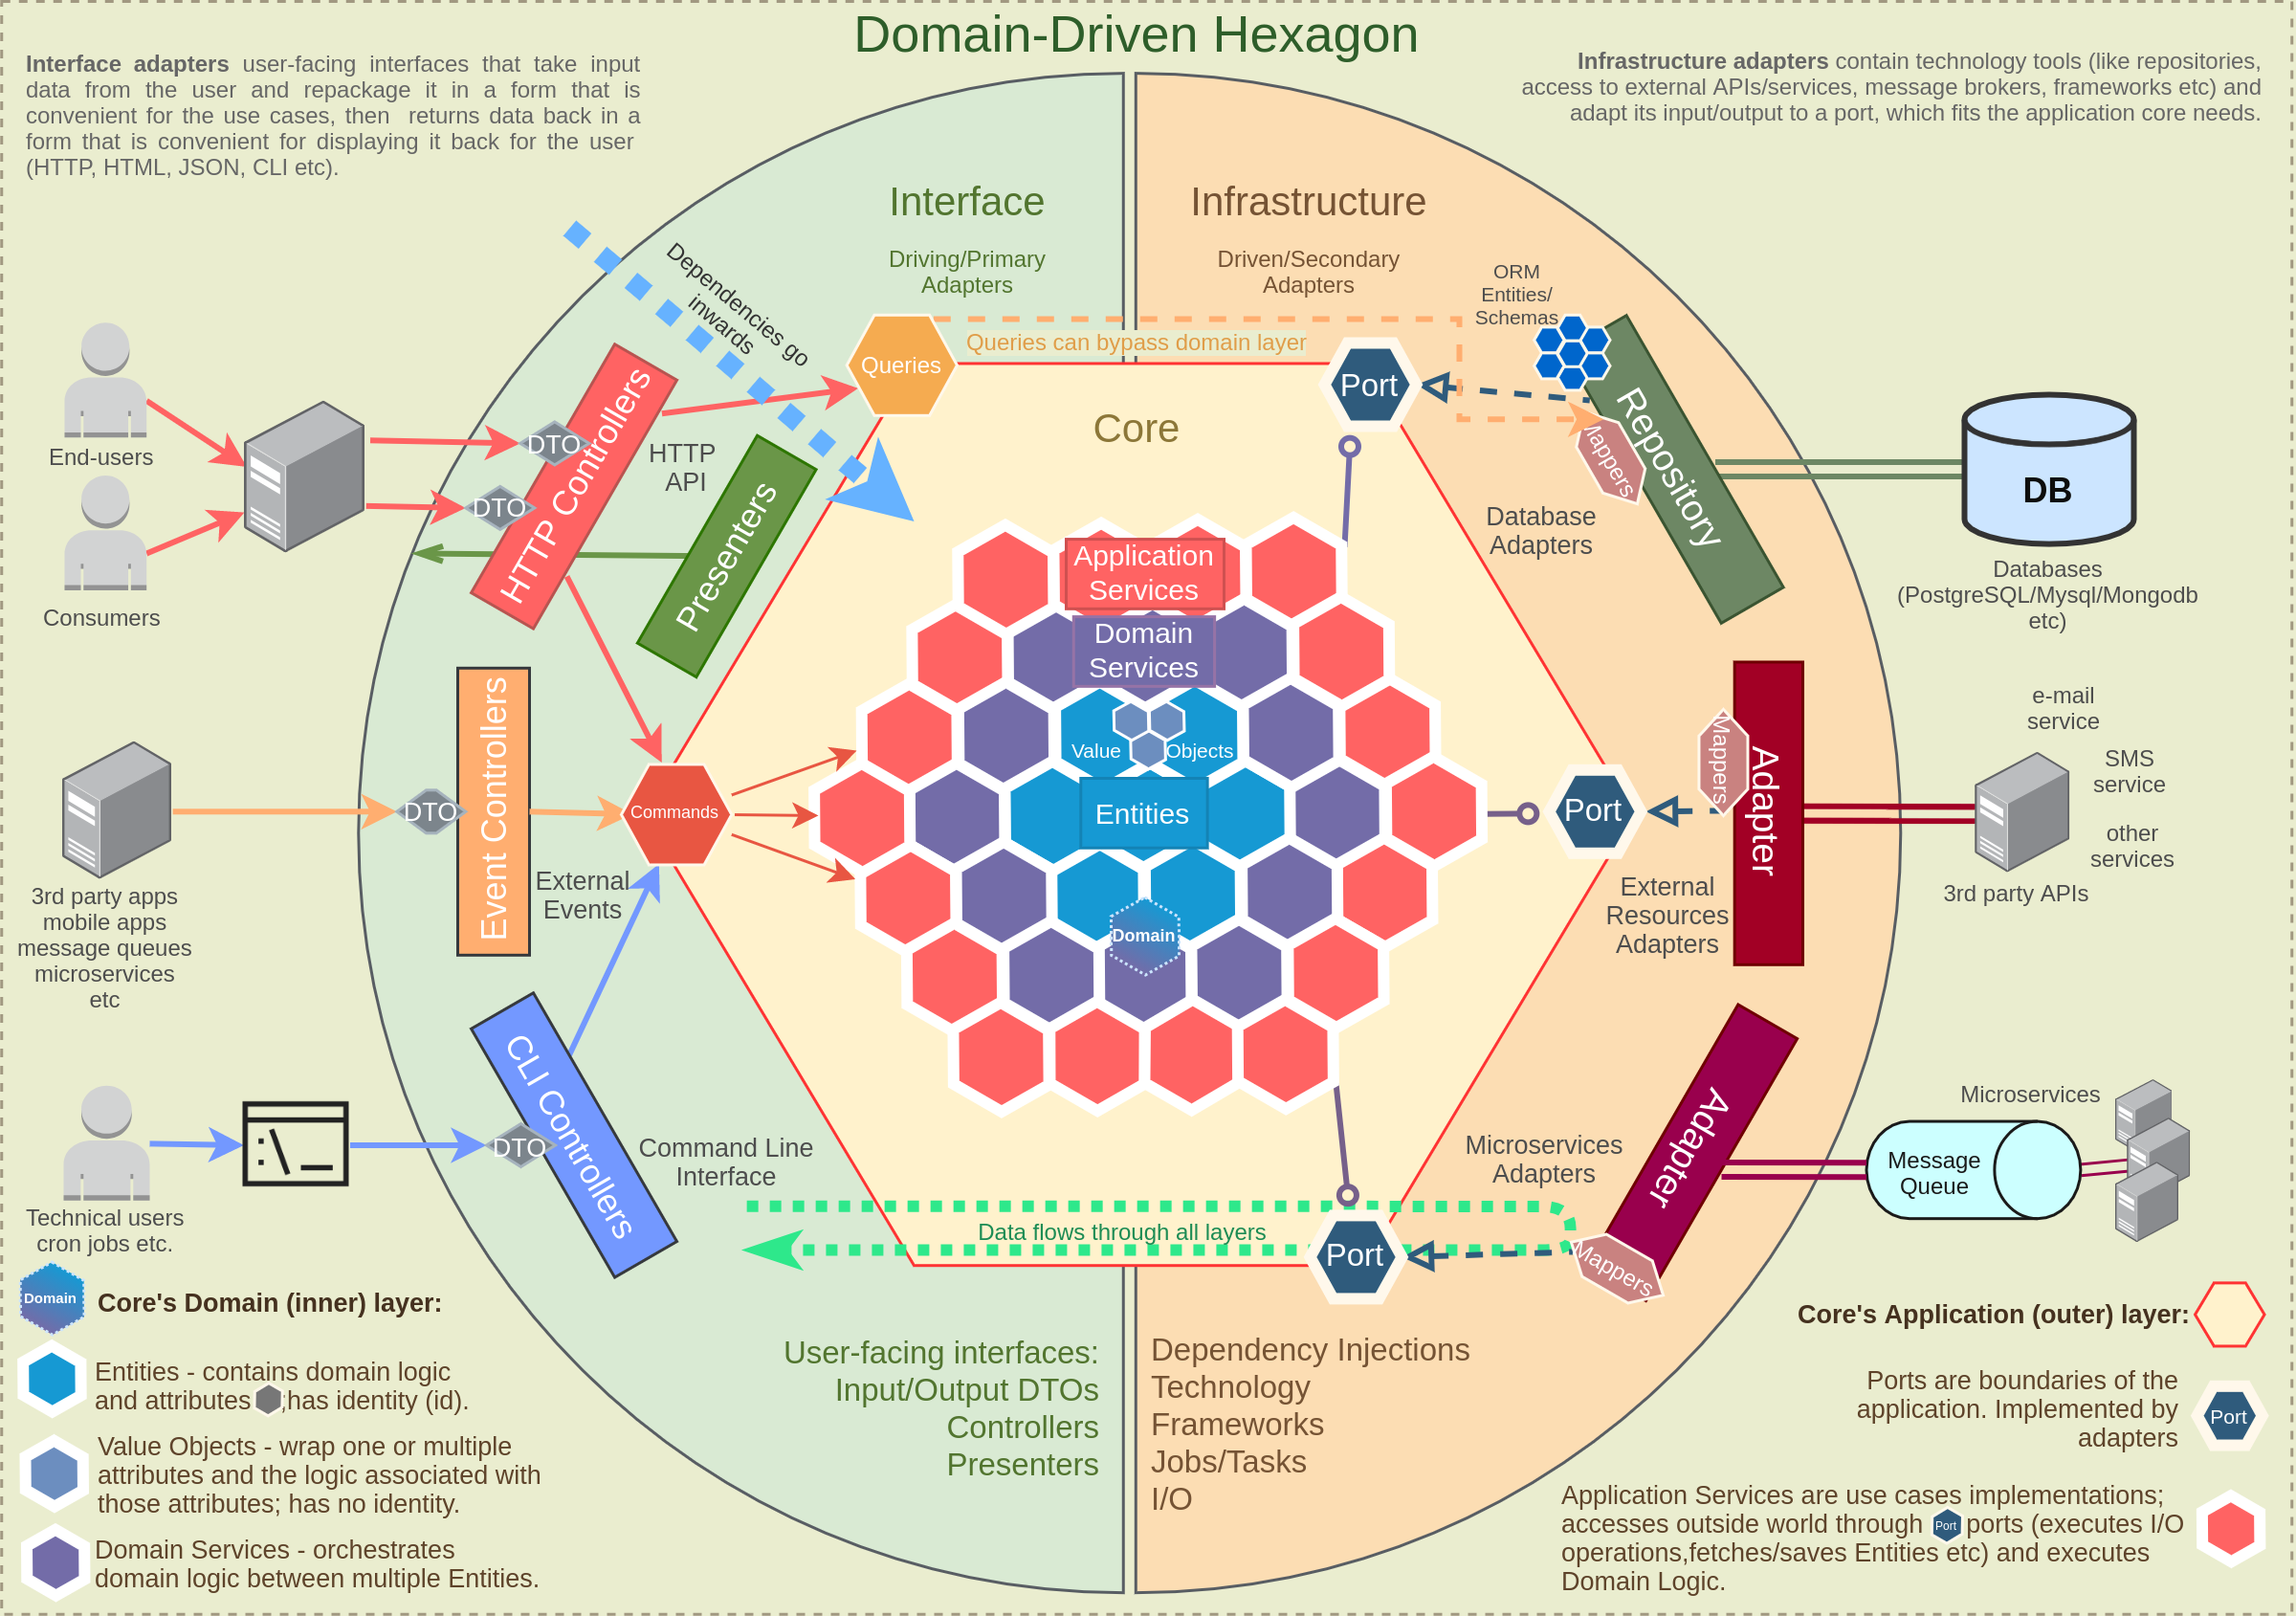 Domain-Driven Hexagon